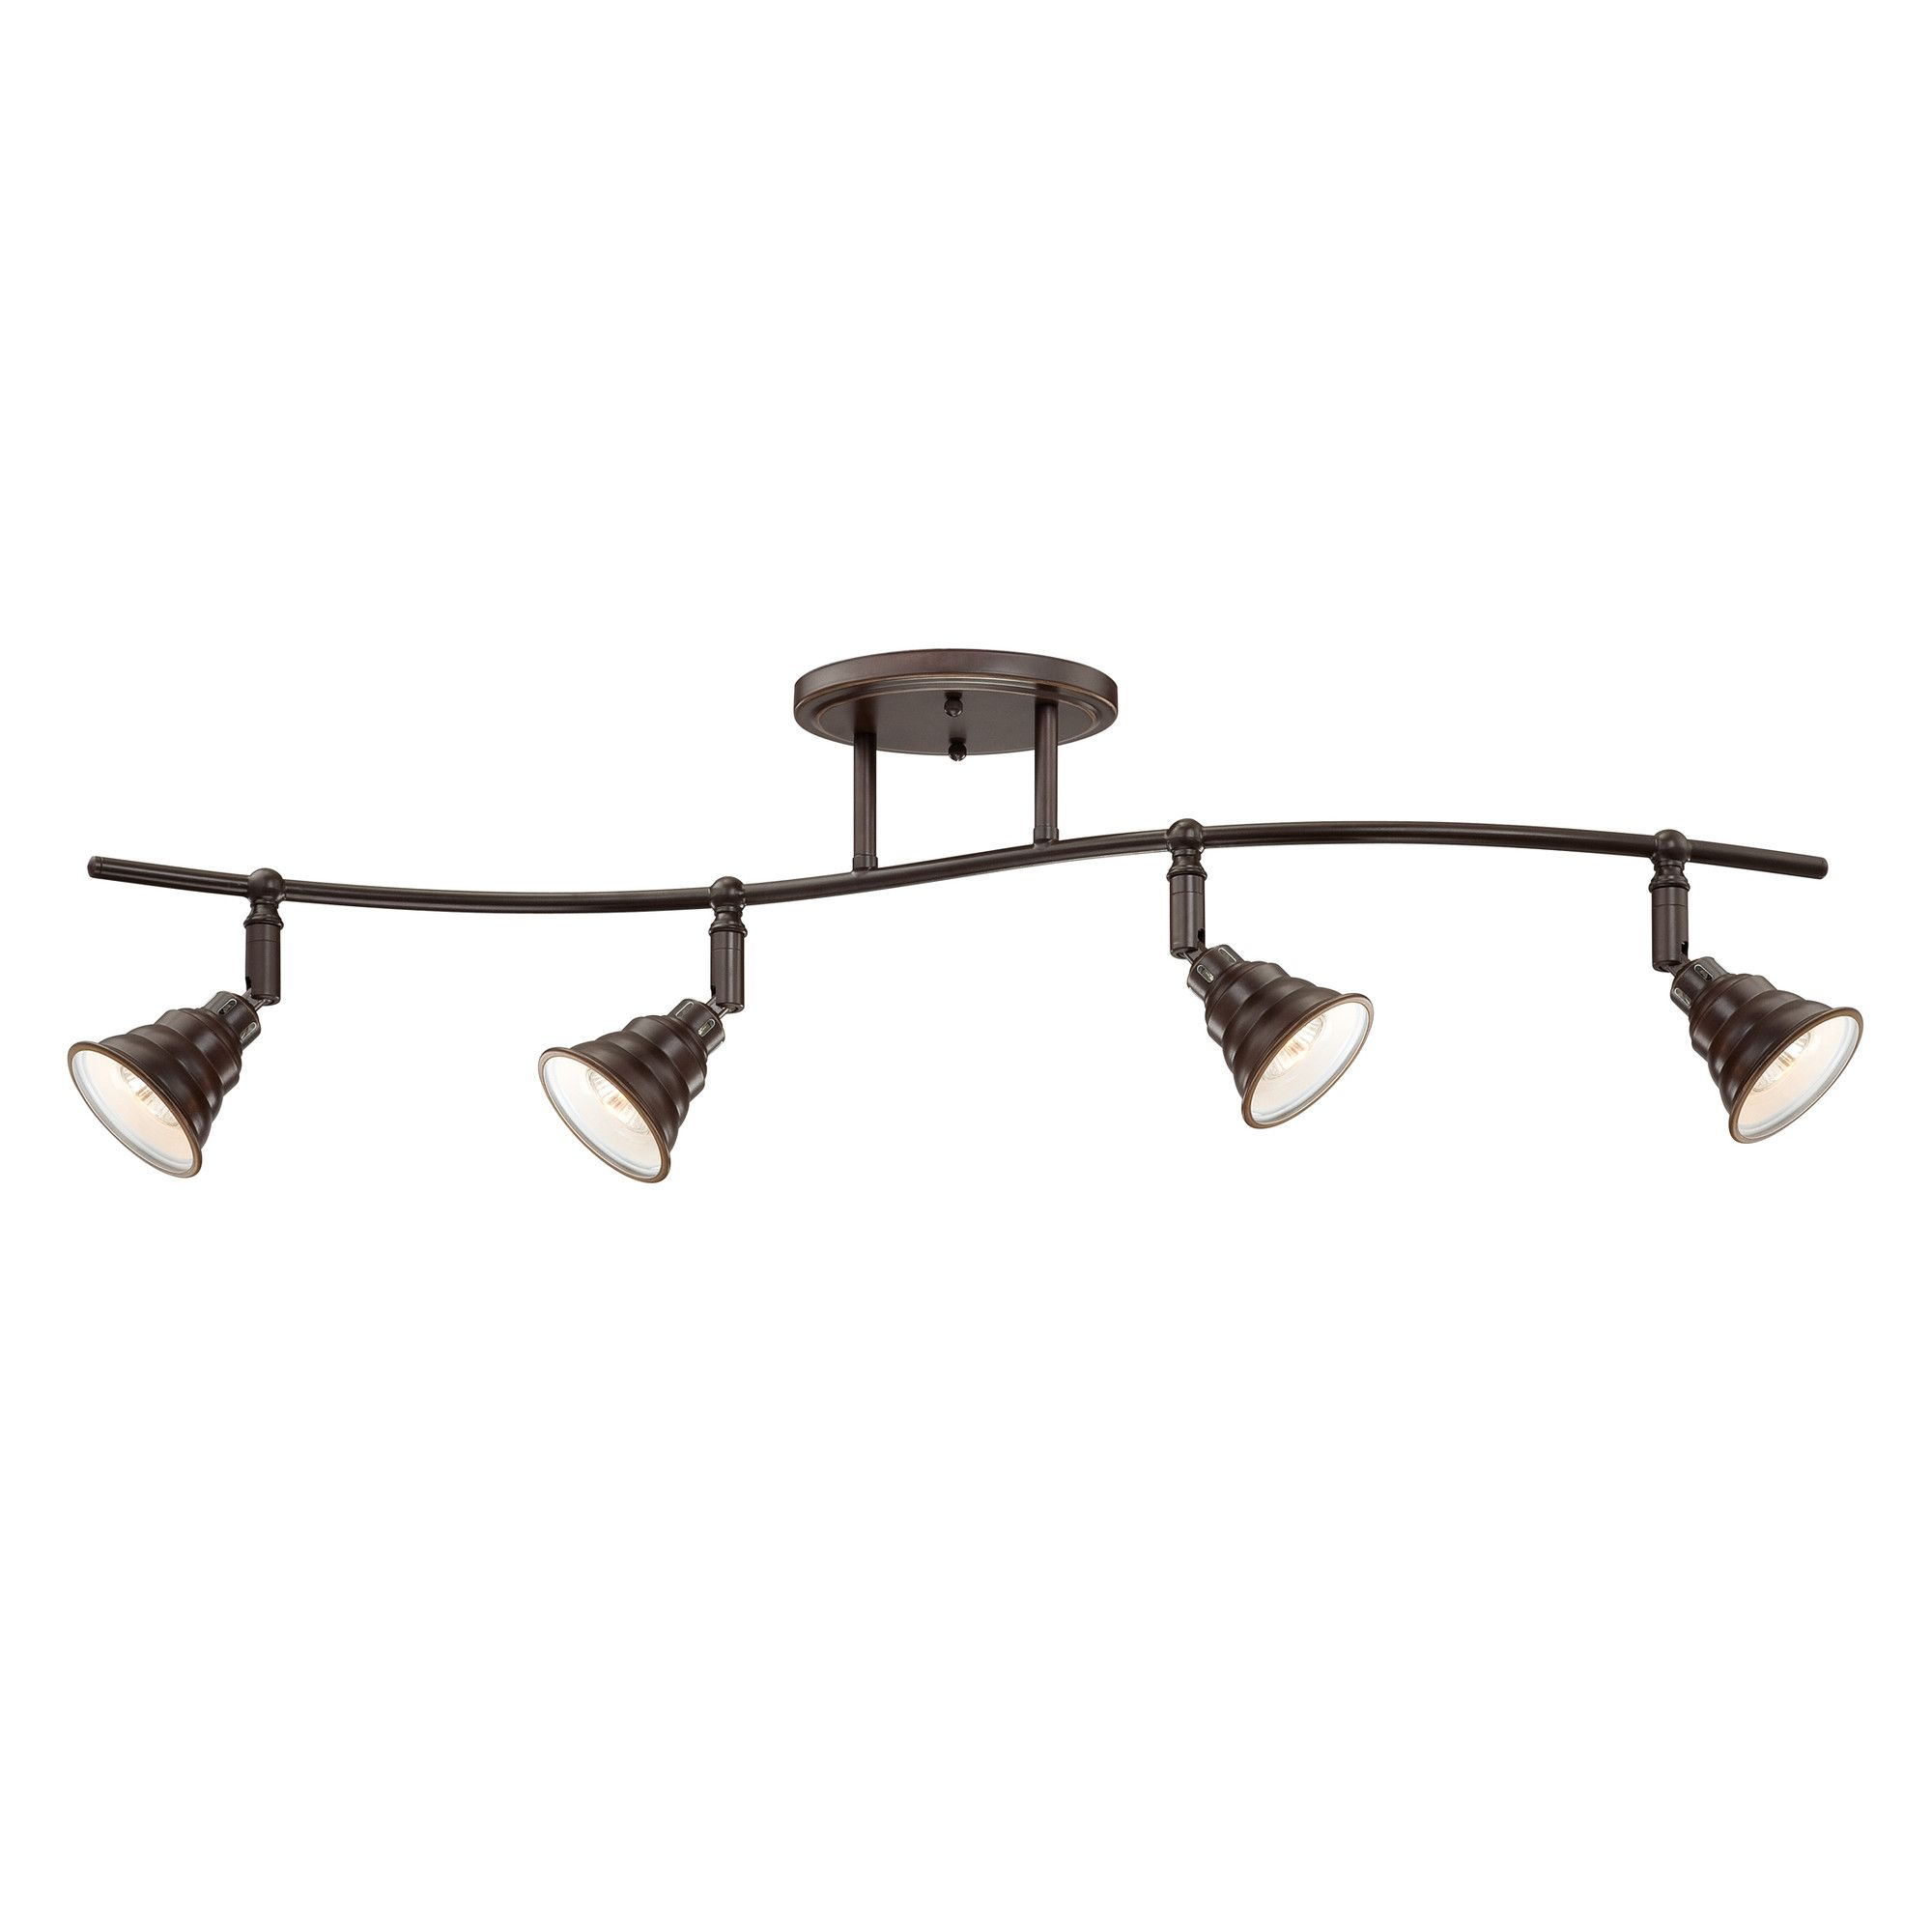 Quoizel eastvale 4 light ceiling track light reviews wayfair shop quoizel eastvale ceiling track light at lowes canada find our selection of track lighting kits at the lowest price guaranteed with price match off aloadofball Images